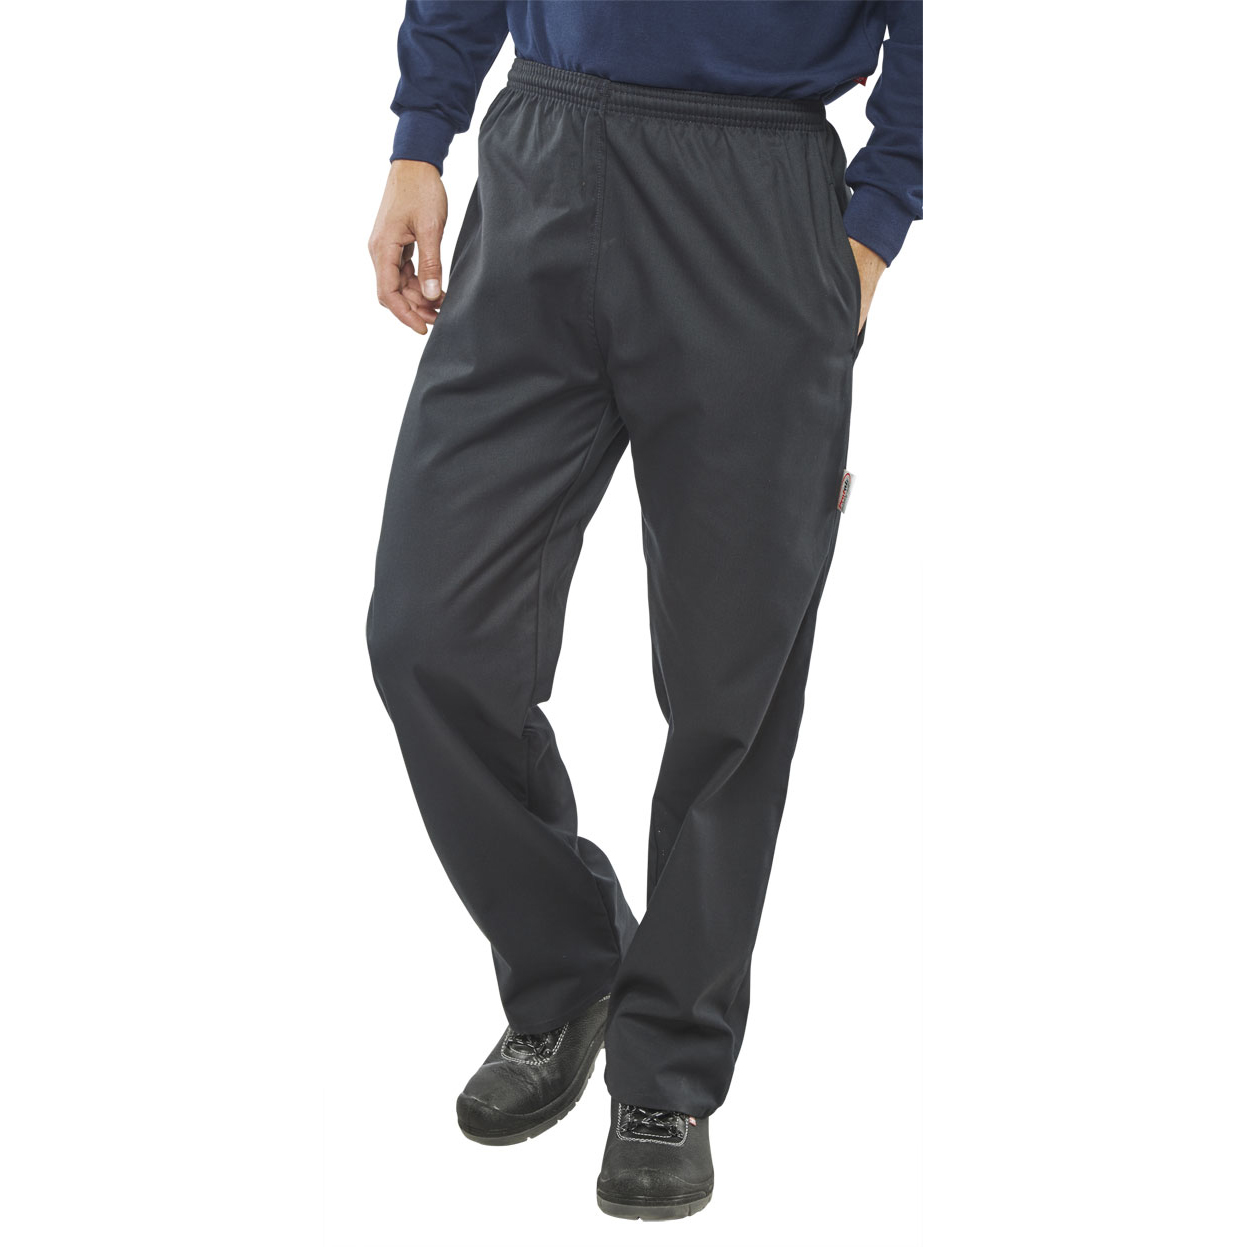 Fire Retardant / Flame Resistant Click Fire Retardant Protex Trousers S Navy Blue Ref CFRPTNS *Up to 3 Day Leadtime*